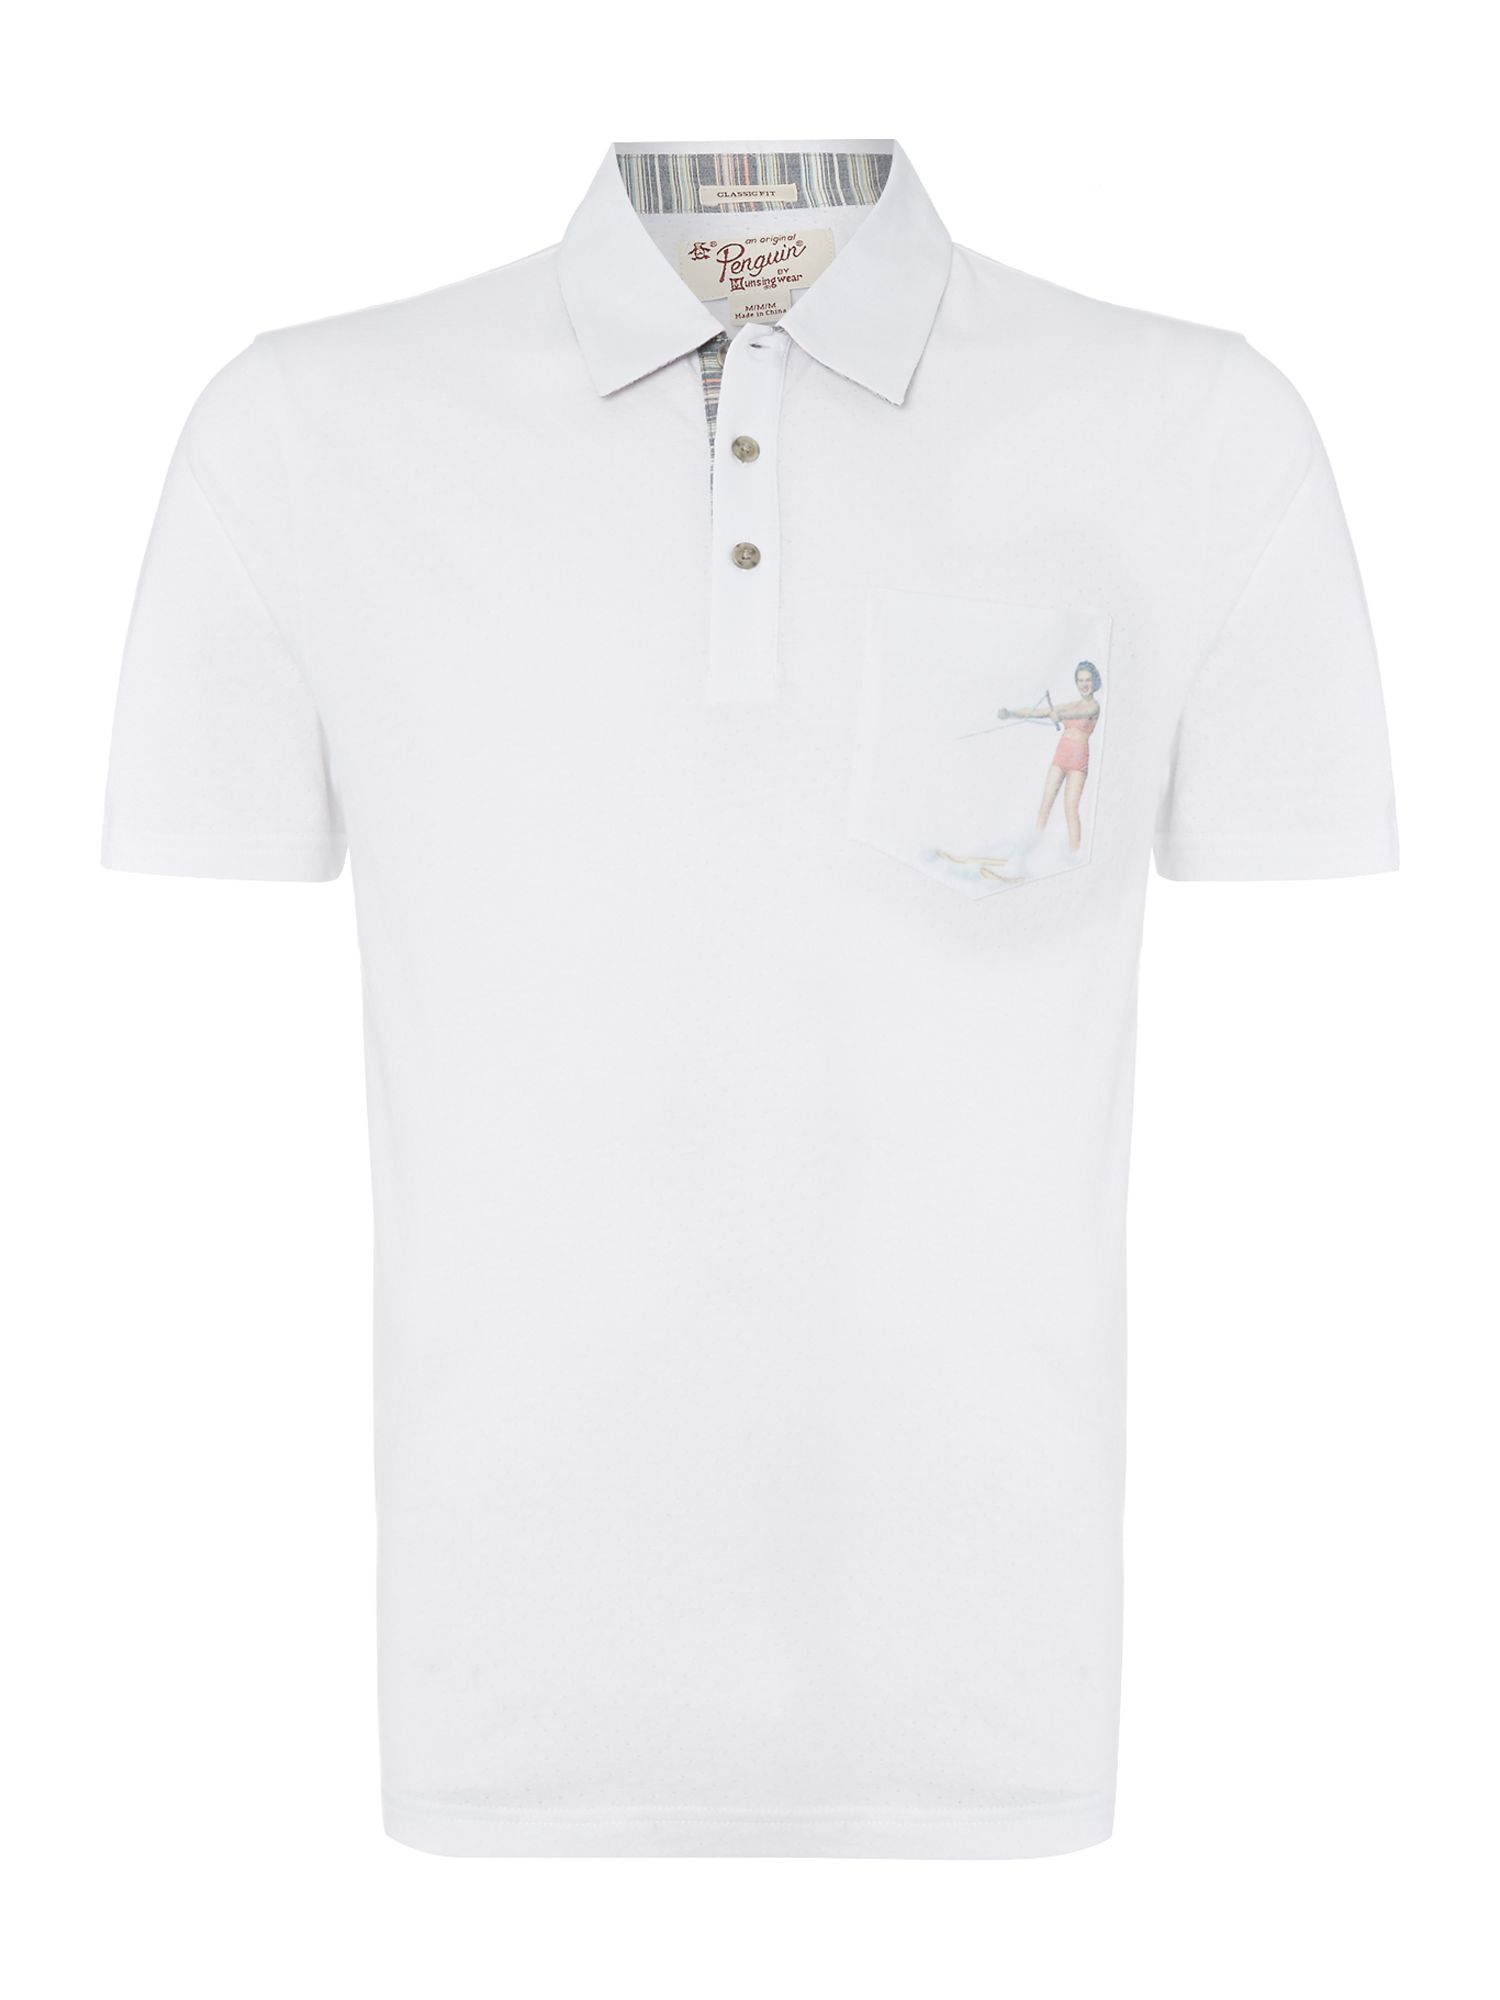 Waterski girl pocket polo